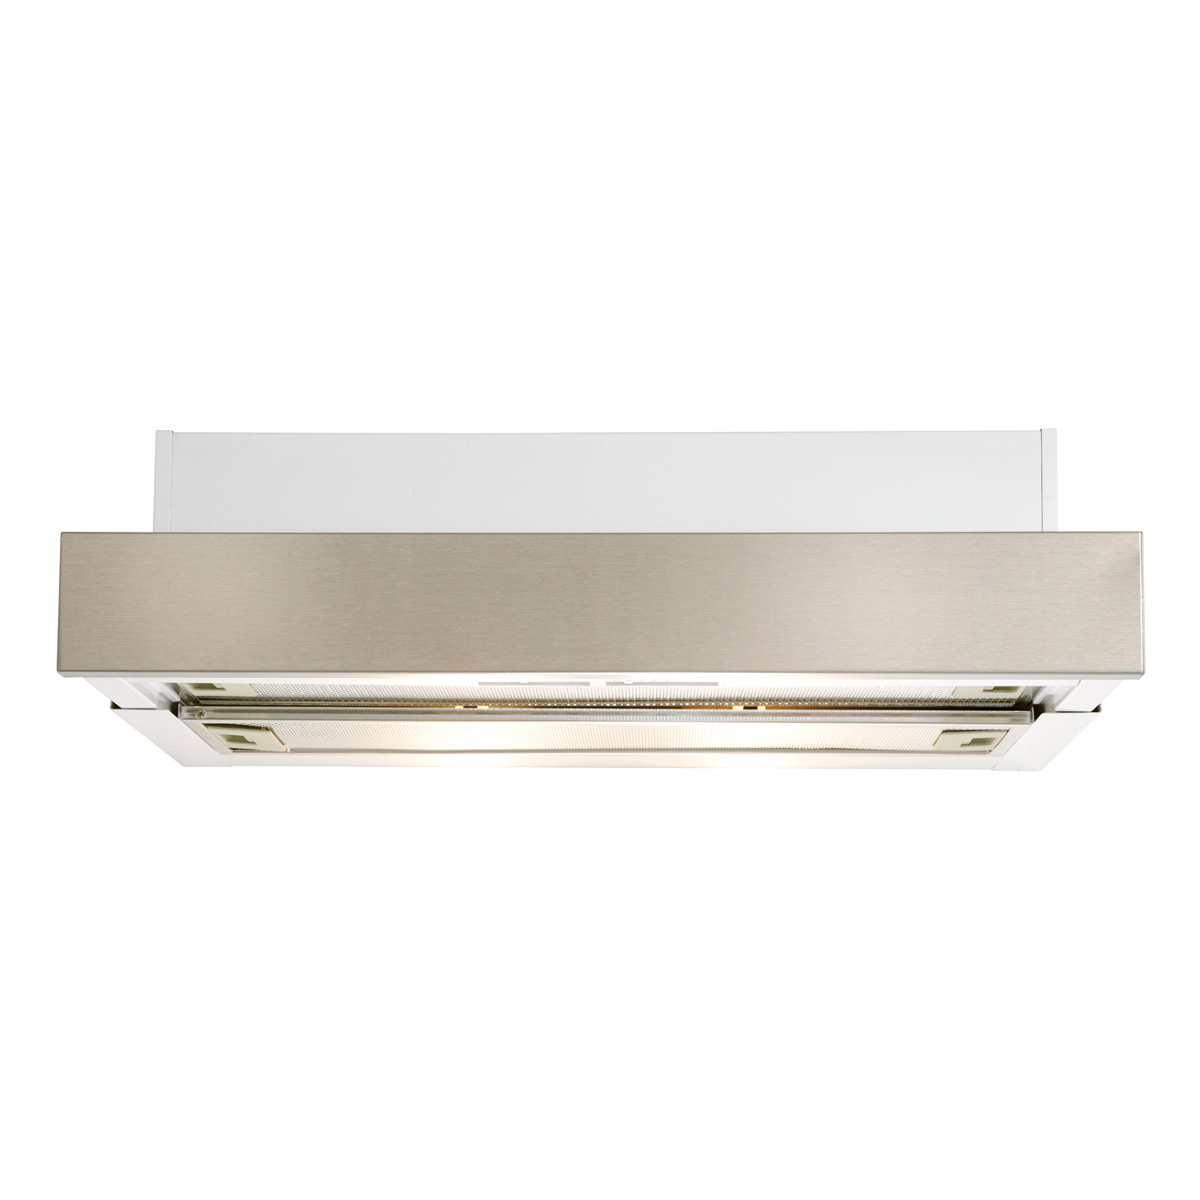 Euromaid Slide Out Rangehood RSFR8S